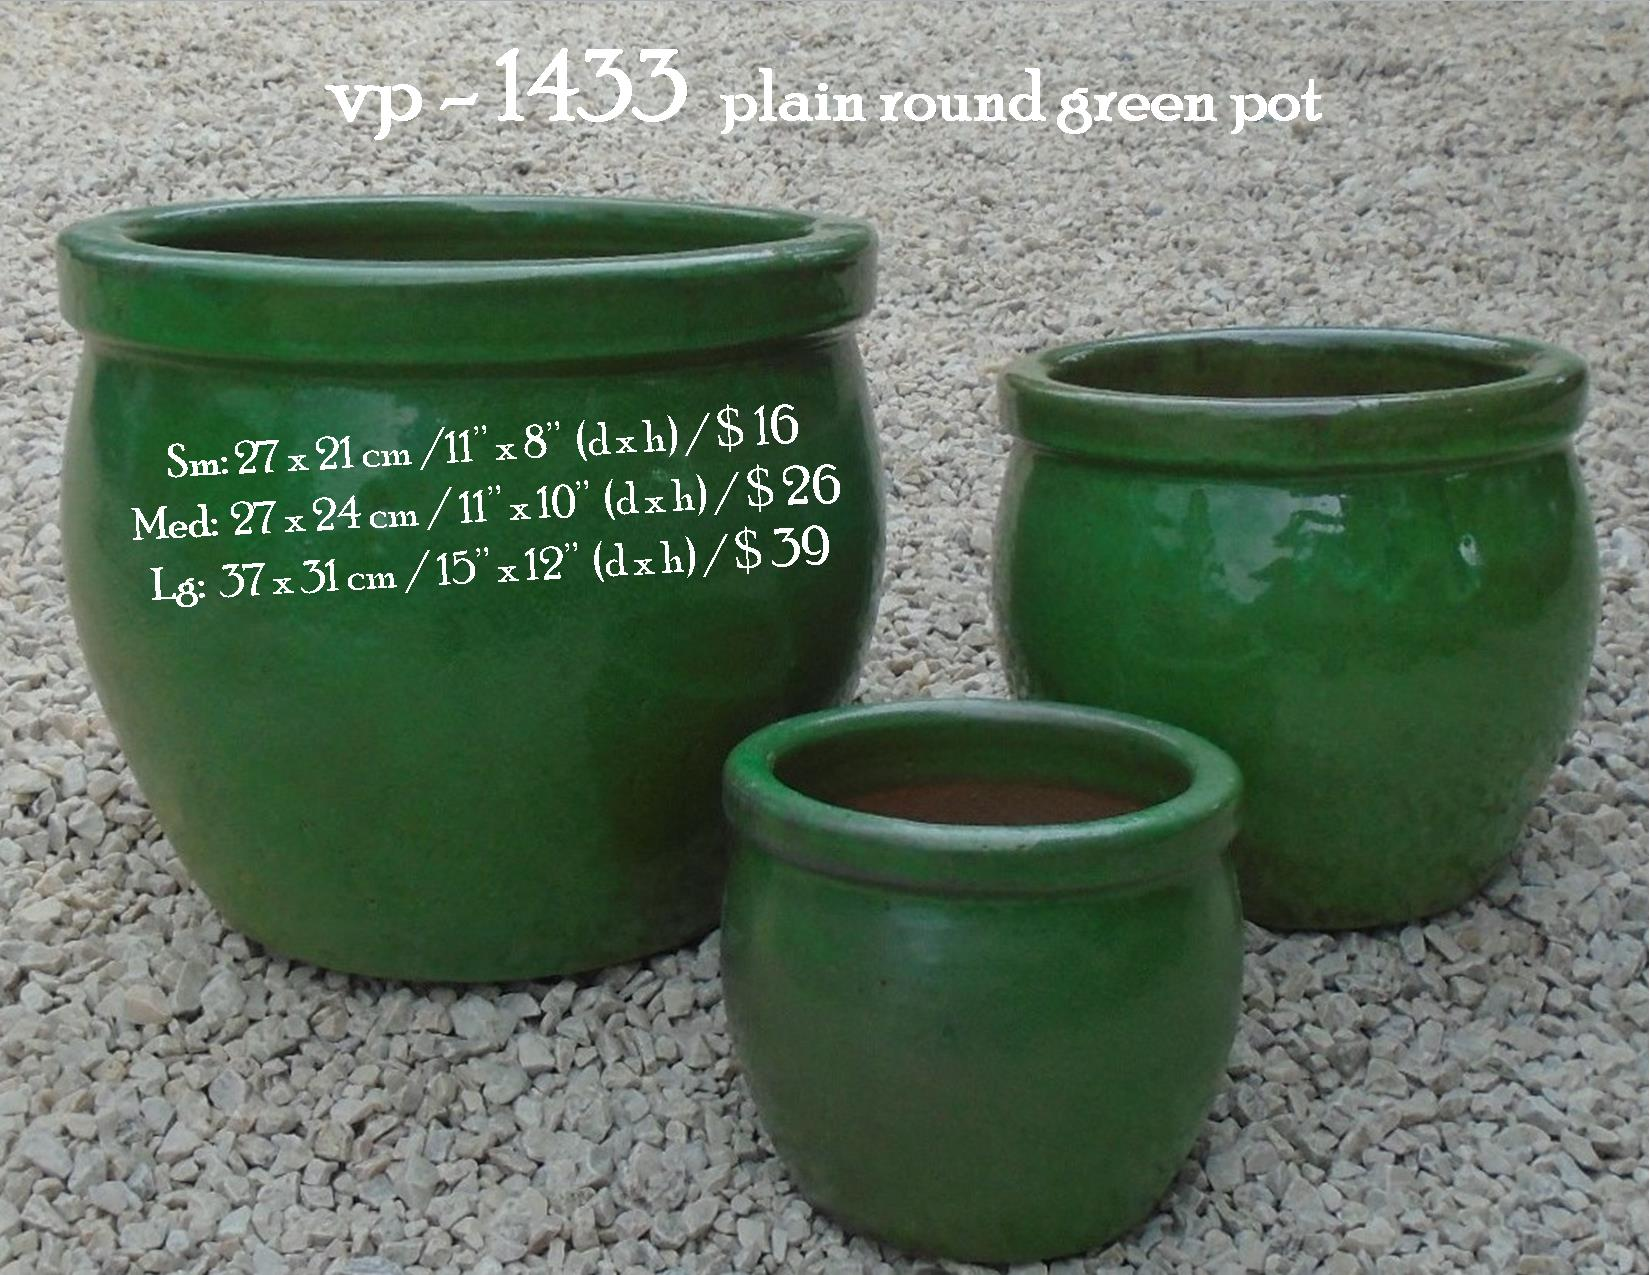 vp - 1433  plain round green pot